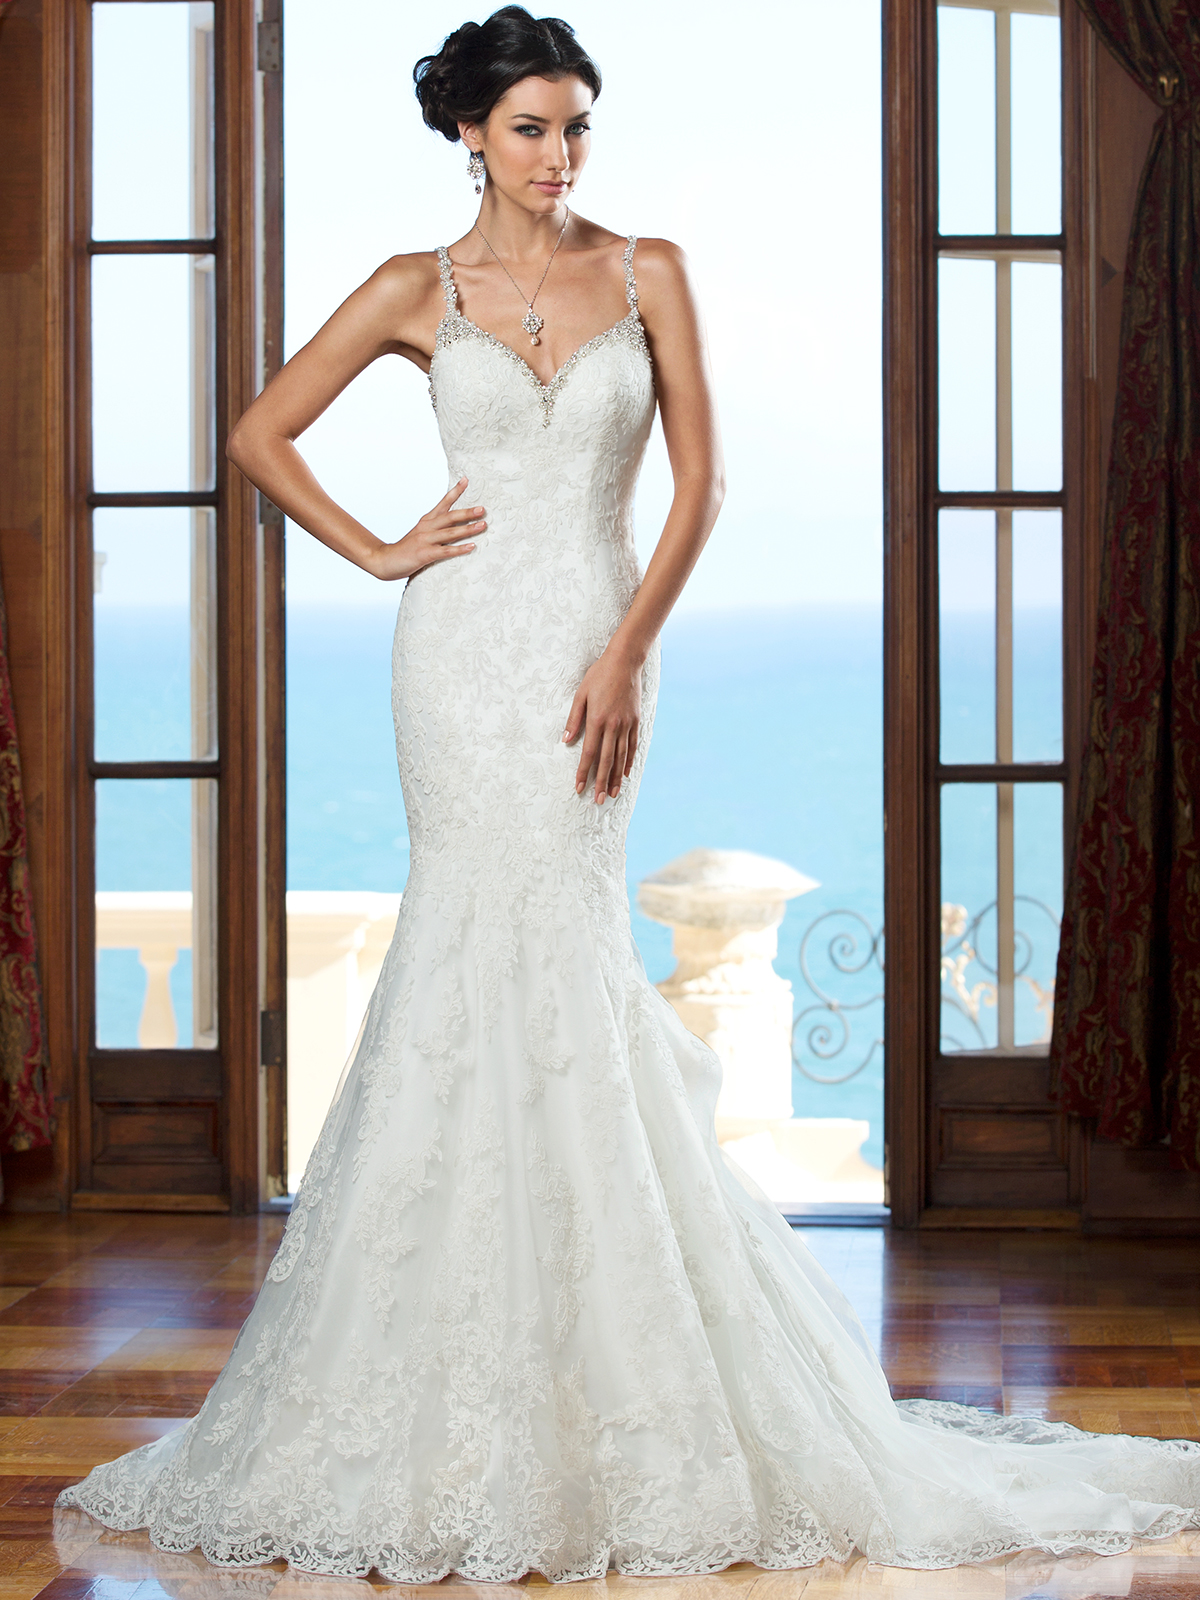 Janice Sung Wedding Fit And Flare With Shoulder Straps Kitty Chen